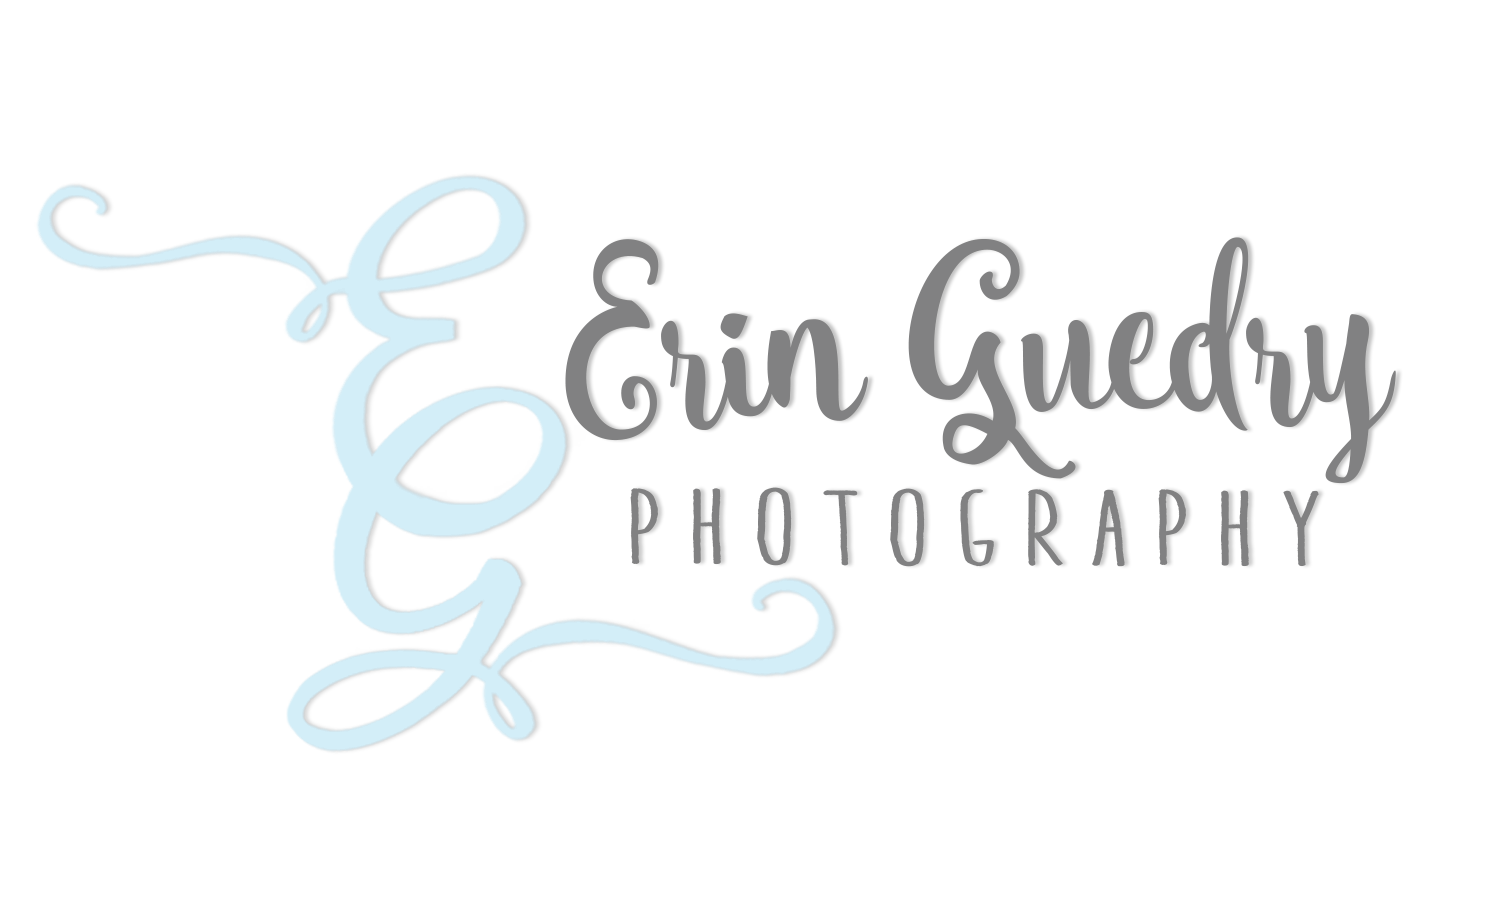 Erin Guedry Photography